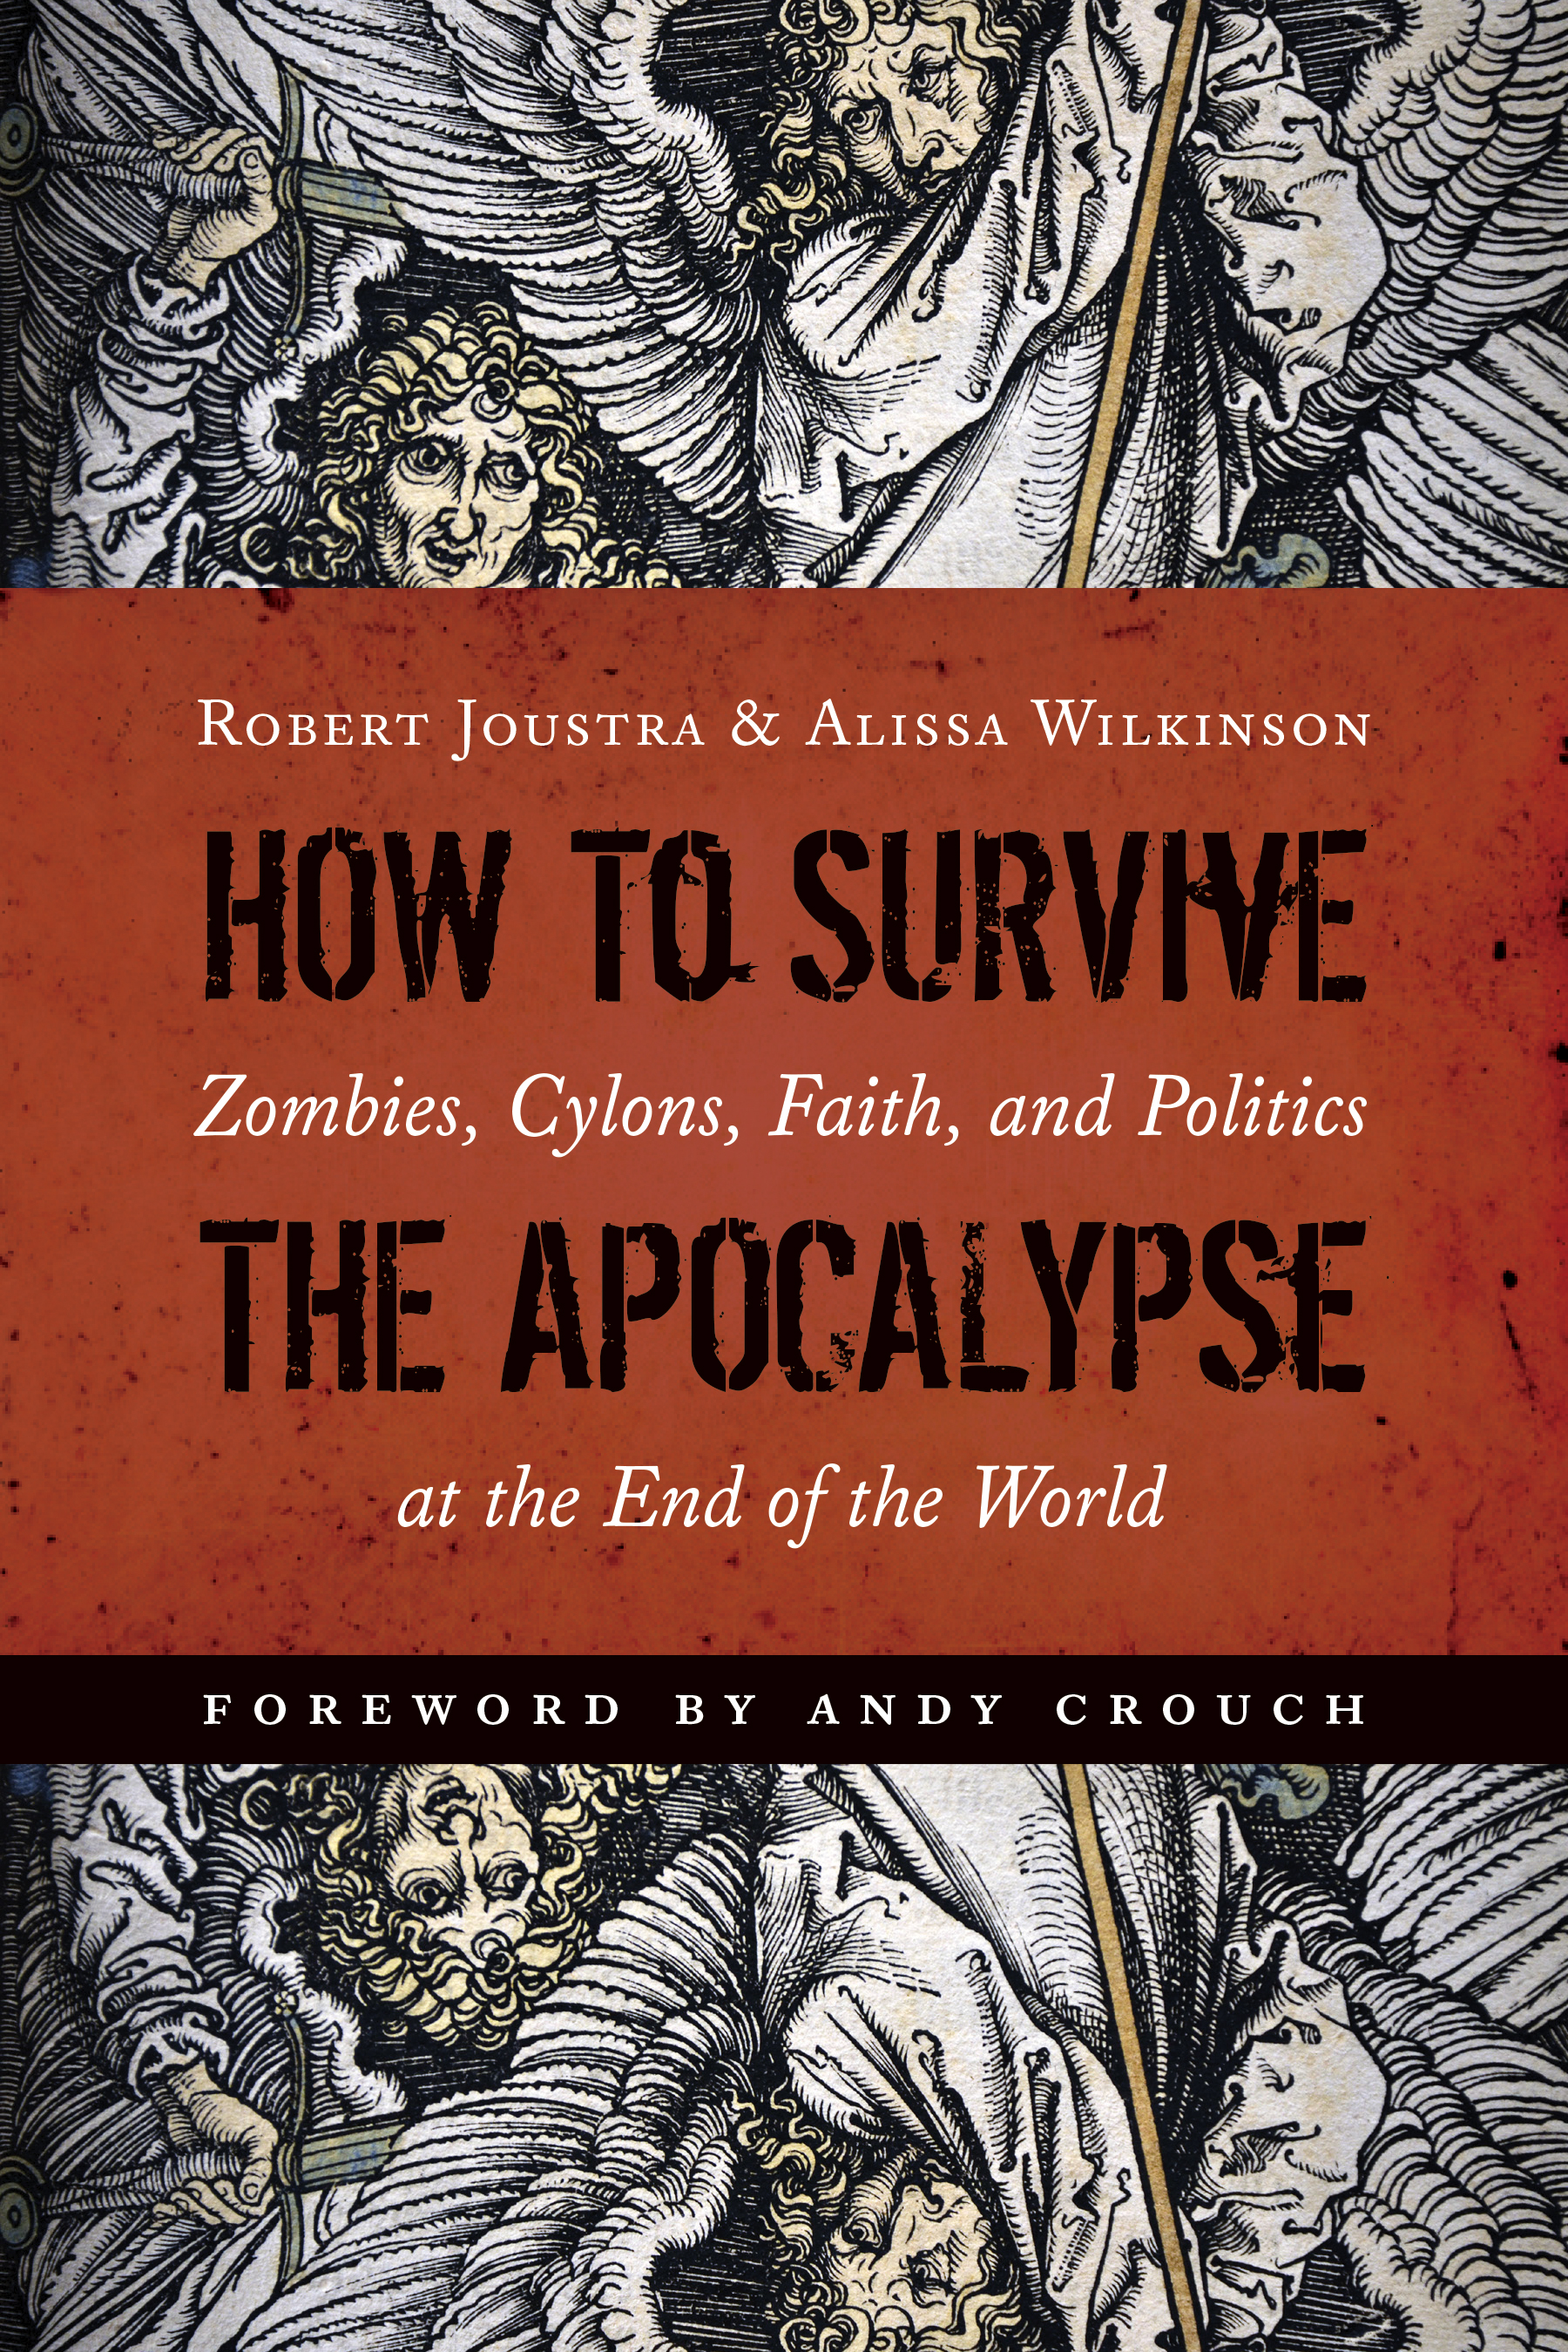 Image result for how to survive  apocalypse book